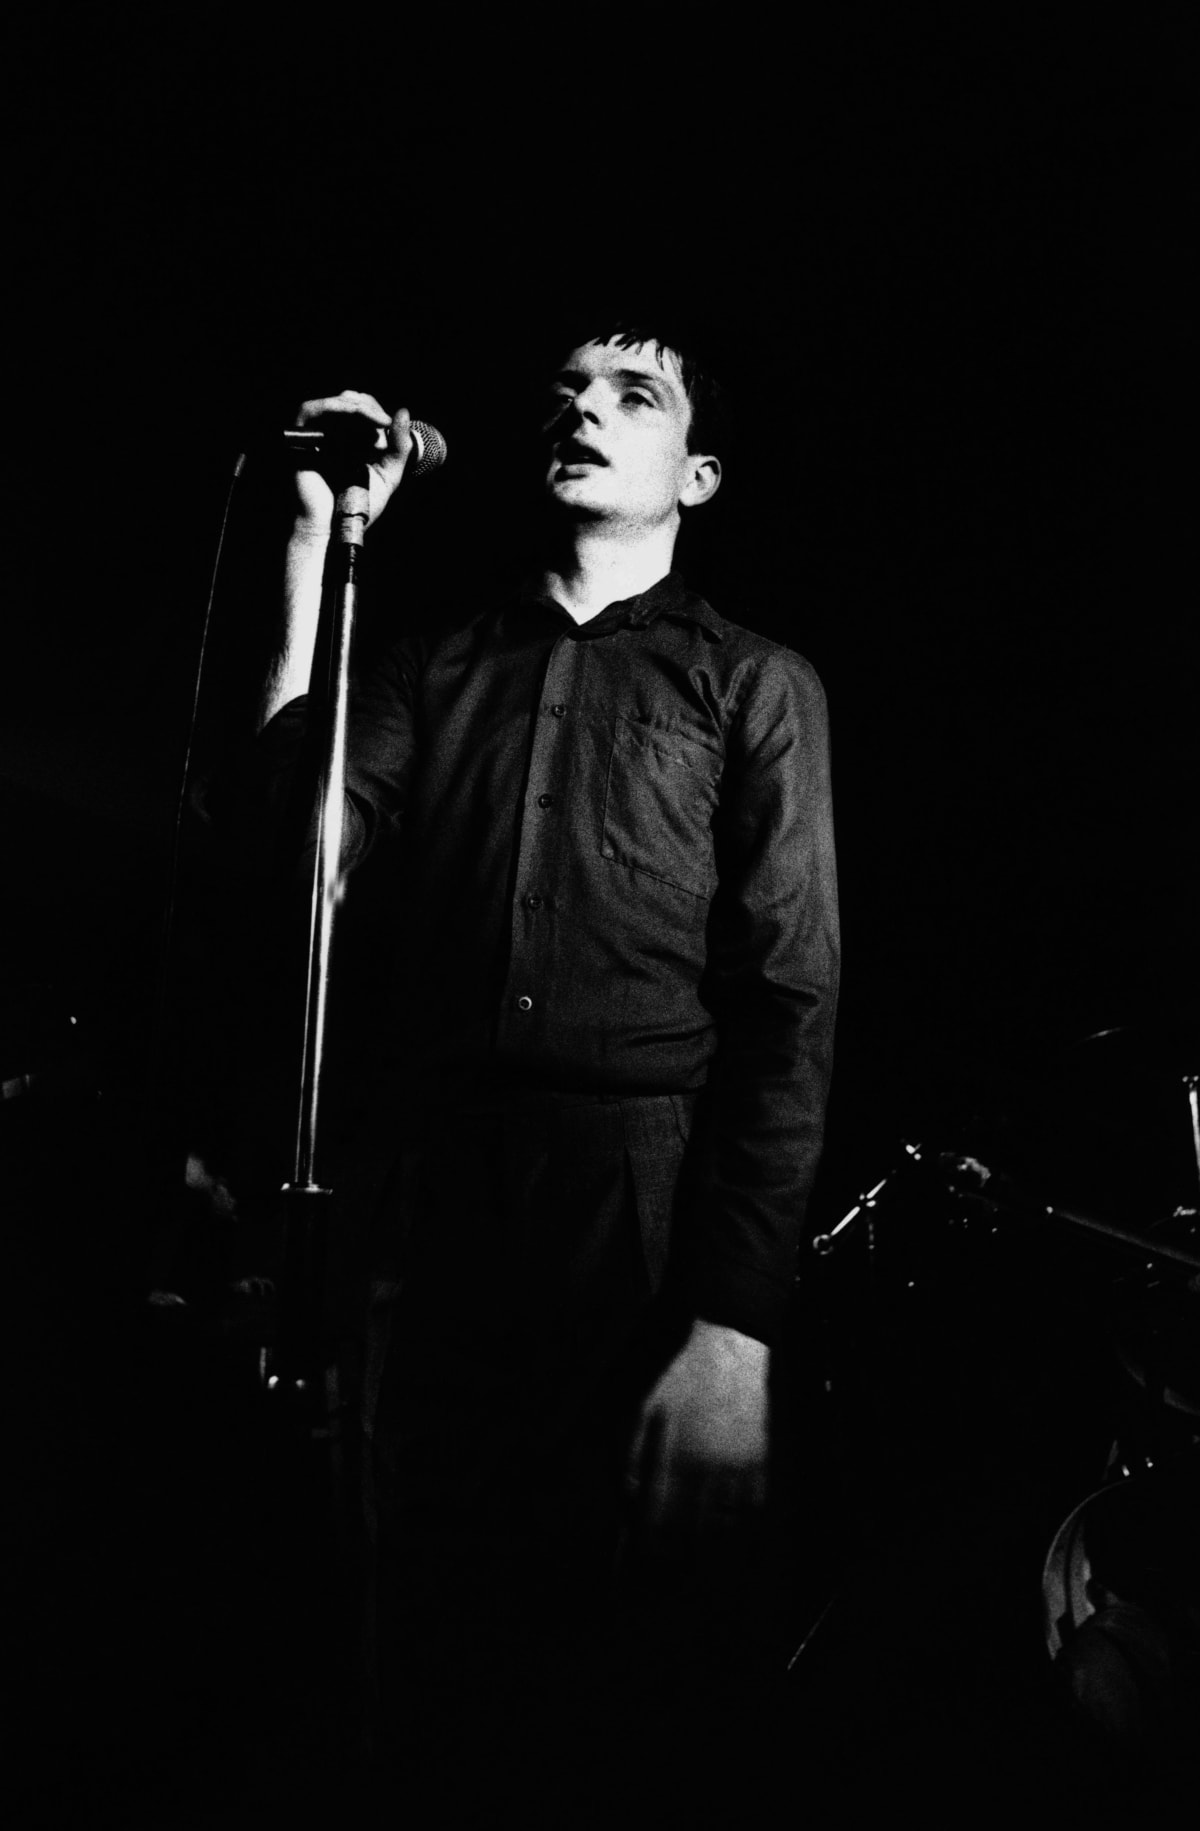 Kevin Cummins 7.Ian Curtis, Joy Division The Factory, Hulme, Manchester 13 July 1979, 2006 Gelatin-silver print. Edition of 75 50.8 x 40.6 cm 20 x 16 in Edition of 75